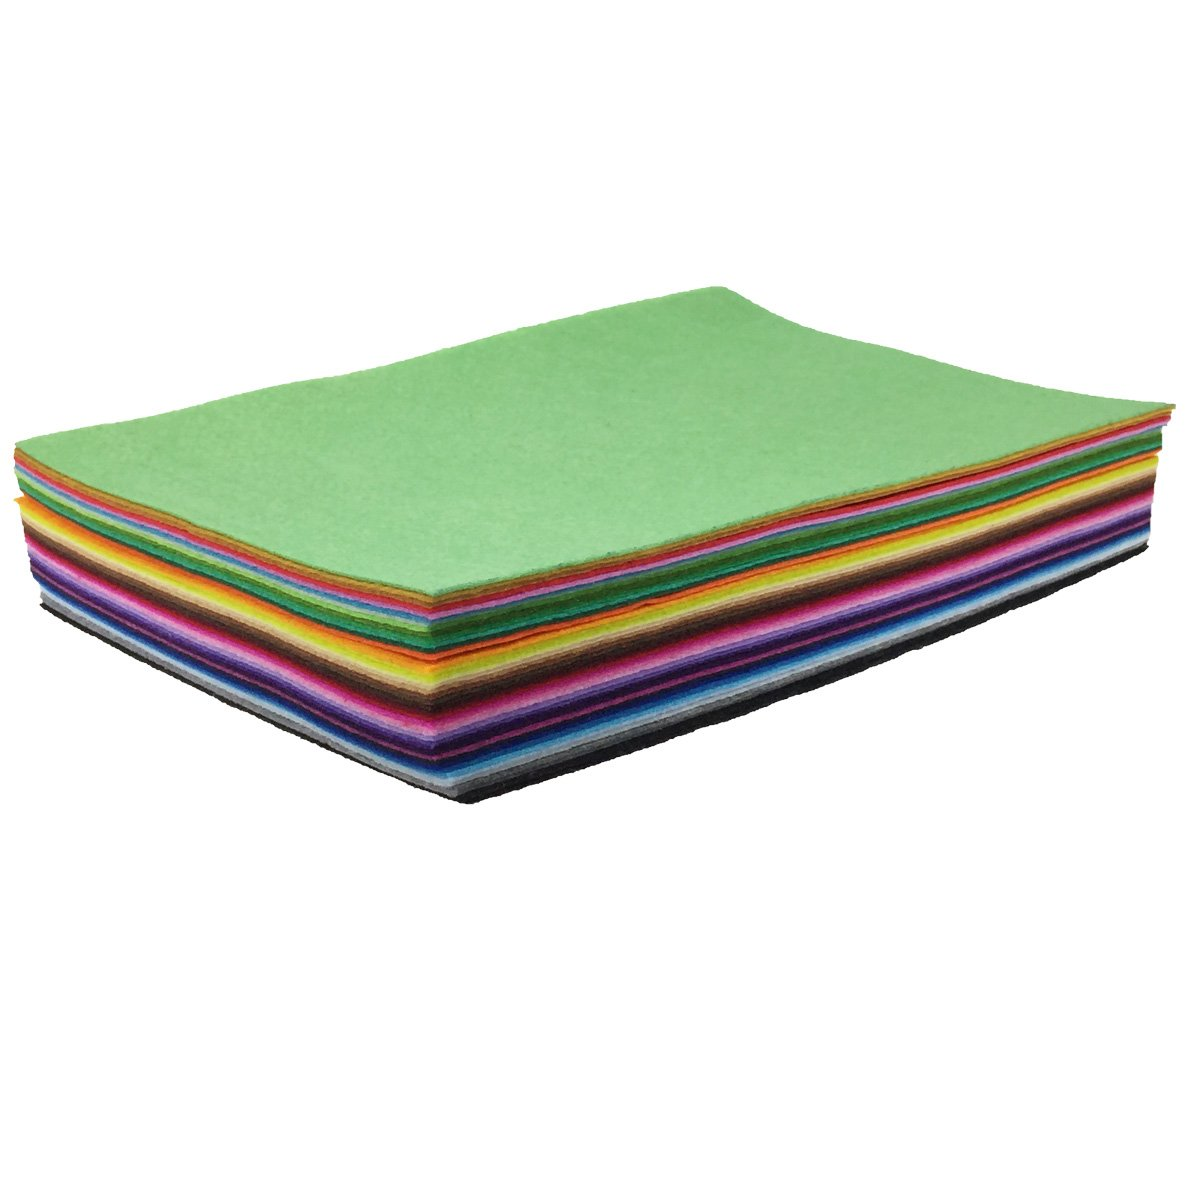 flic-flac 42pcs 8 x 12 inches (20cm30cm) 42 Colors for Choice A4 Felt Fabric Sheet Assorted Color Felt Pack DIY Craft Patchwork by flic-flac (Image #3)